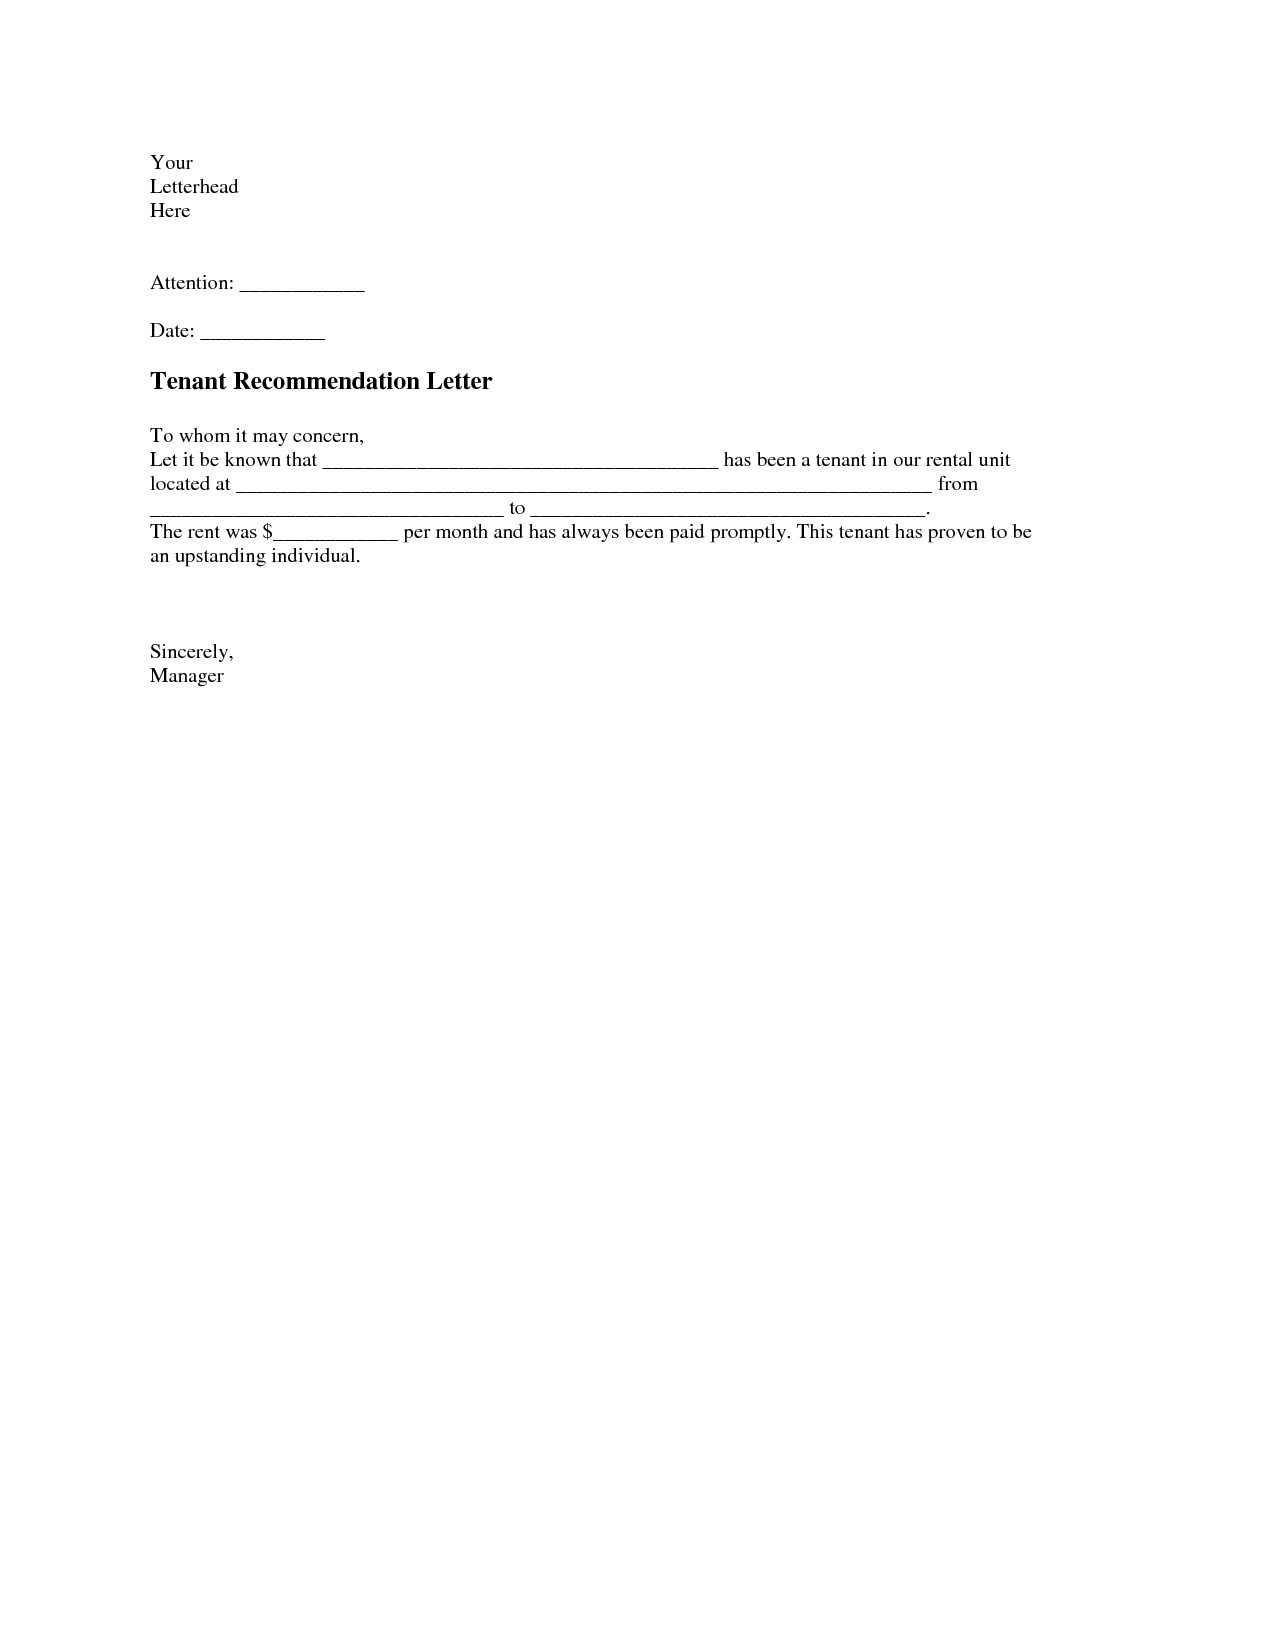 free rental reference letter template example-Tenant Re mendation Letter A tenant re mendation letter is usually required by a serious landlord from previous landlords to ensure that the potential 10-g